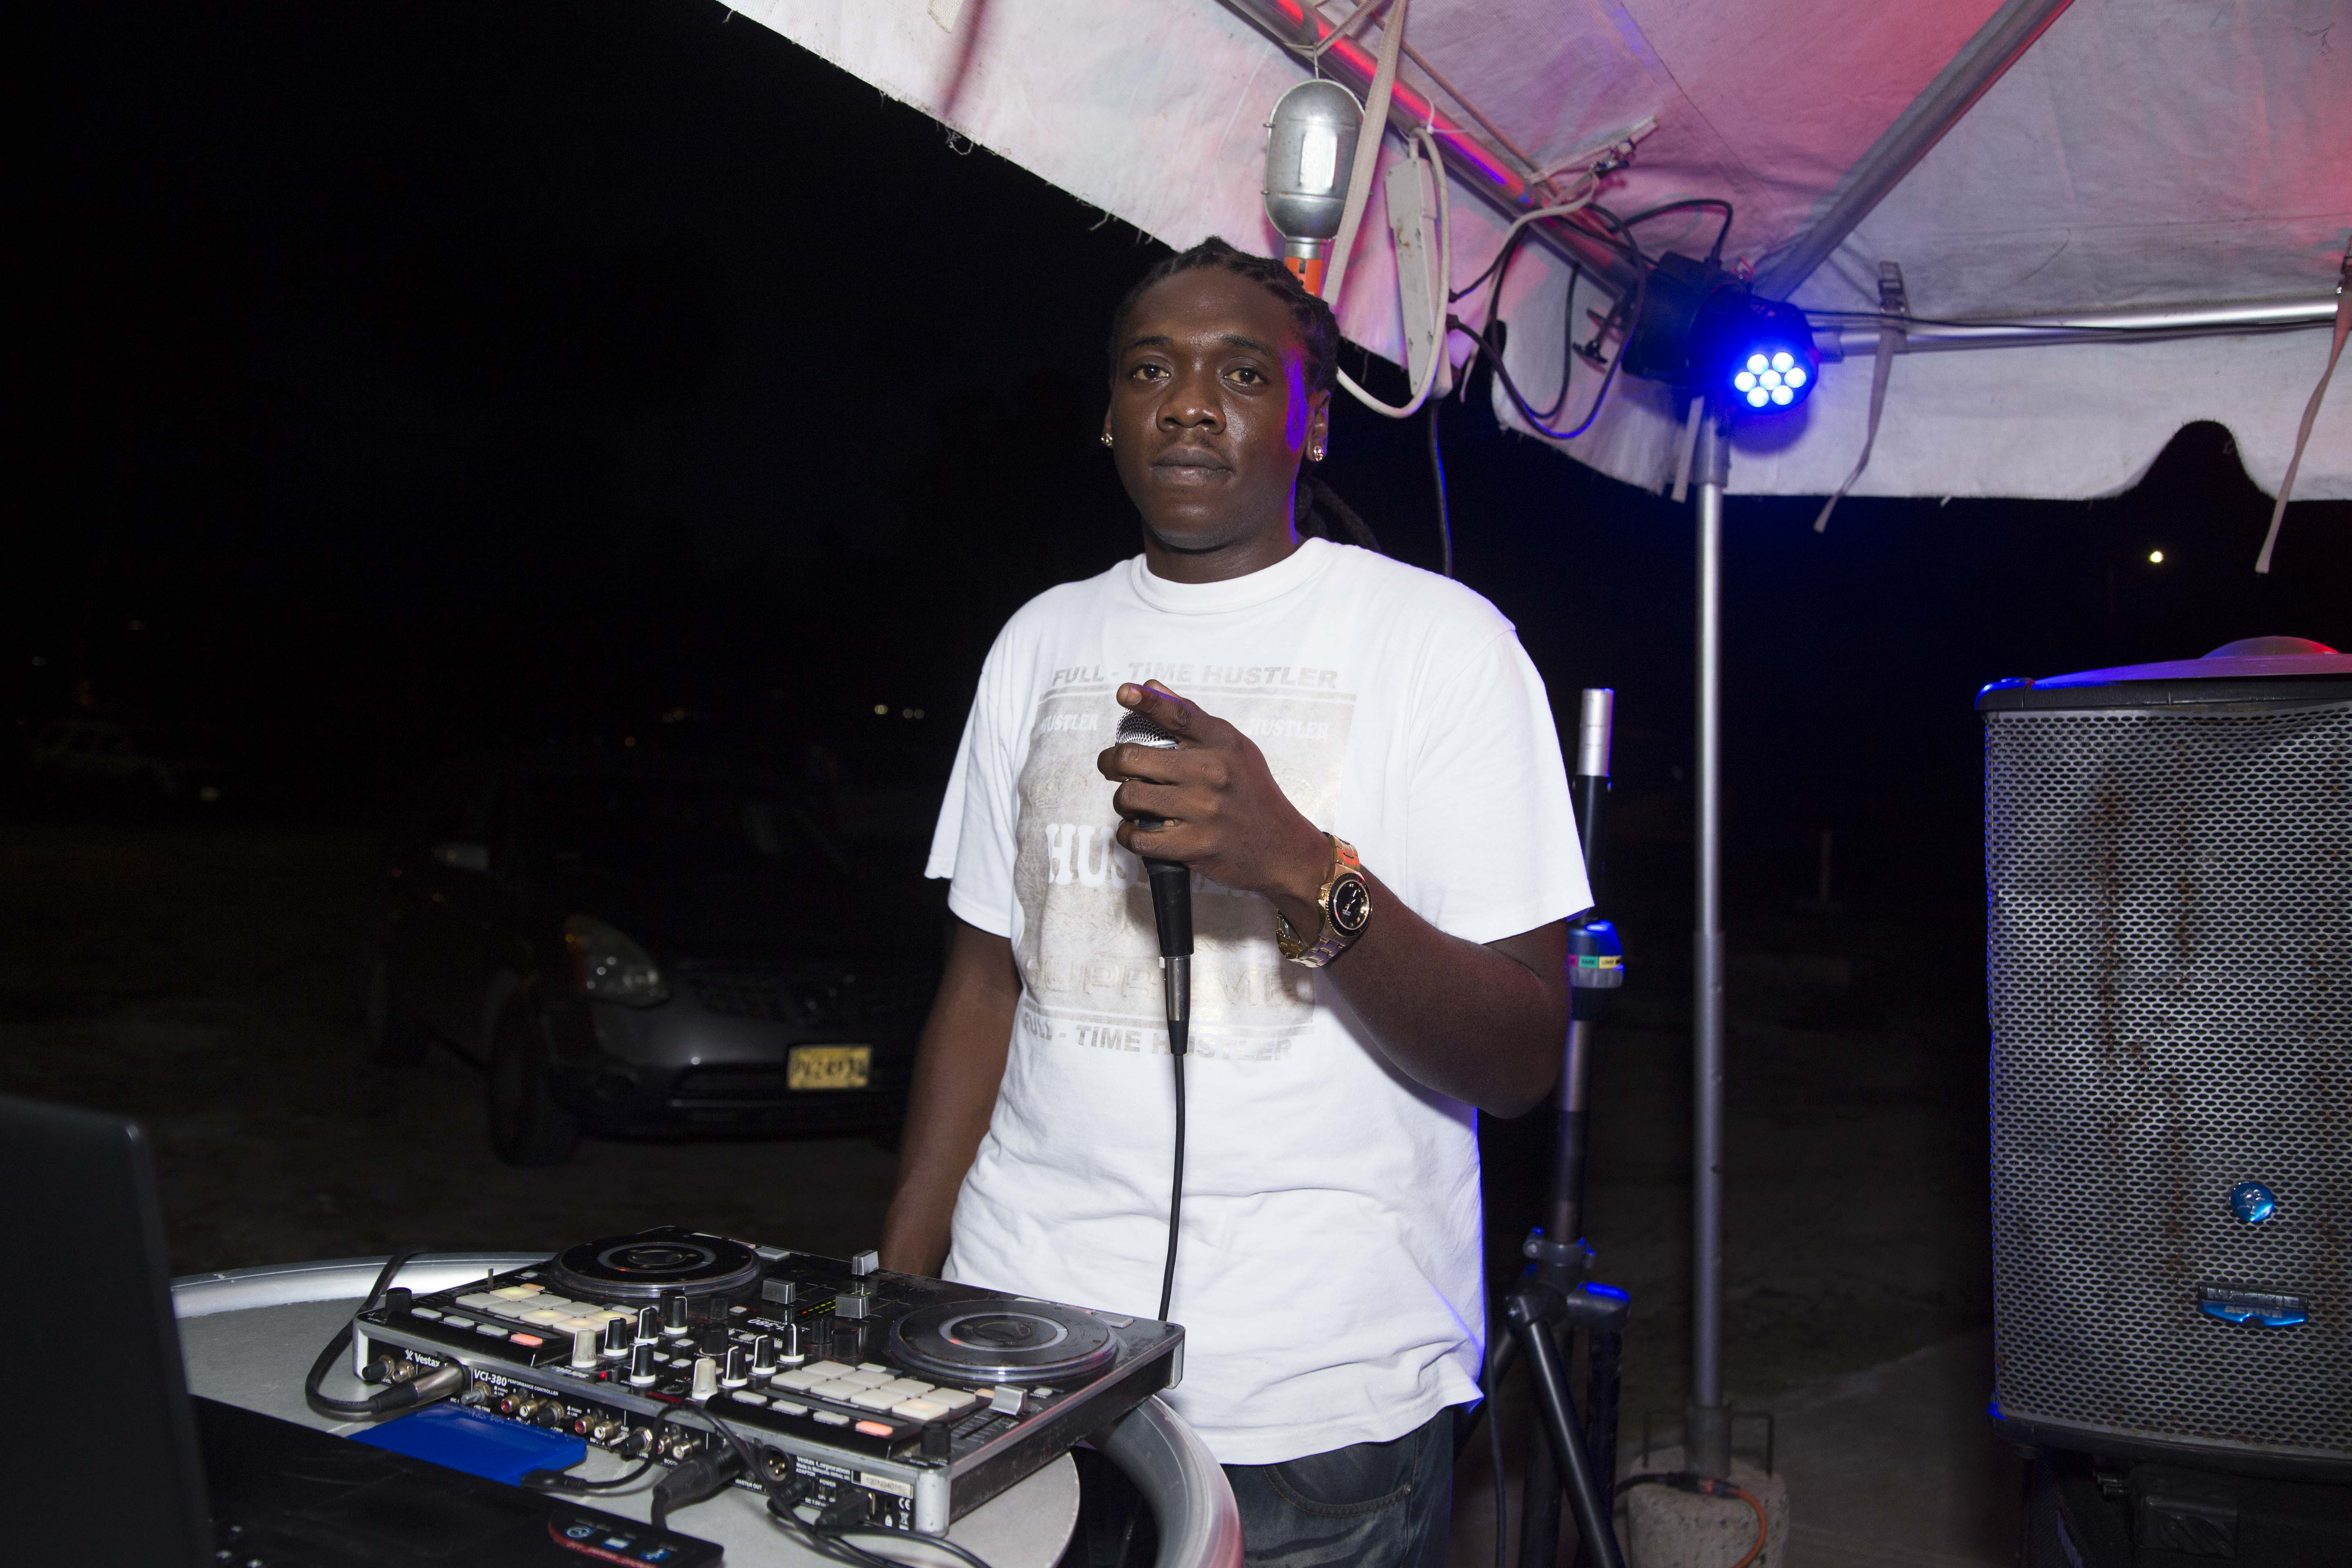 house dj young money soundz at trellis bay market